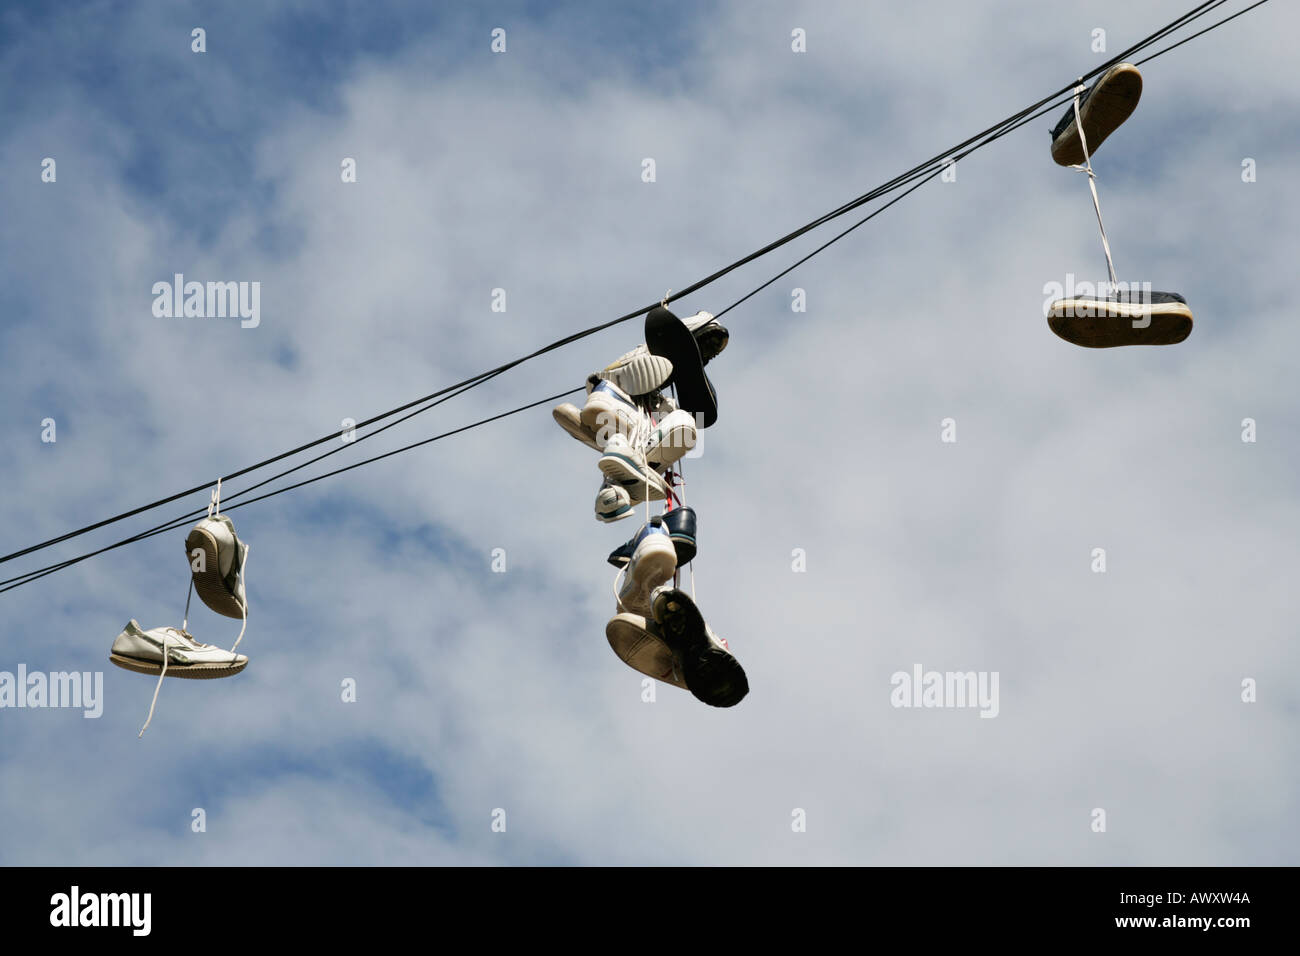 Shoes Hanging From Telephone Wire Stock Photos & Shoes Hanging From ...